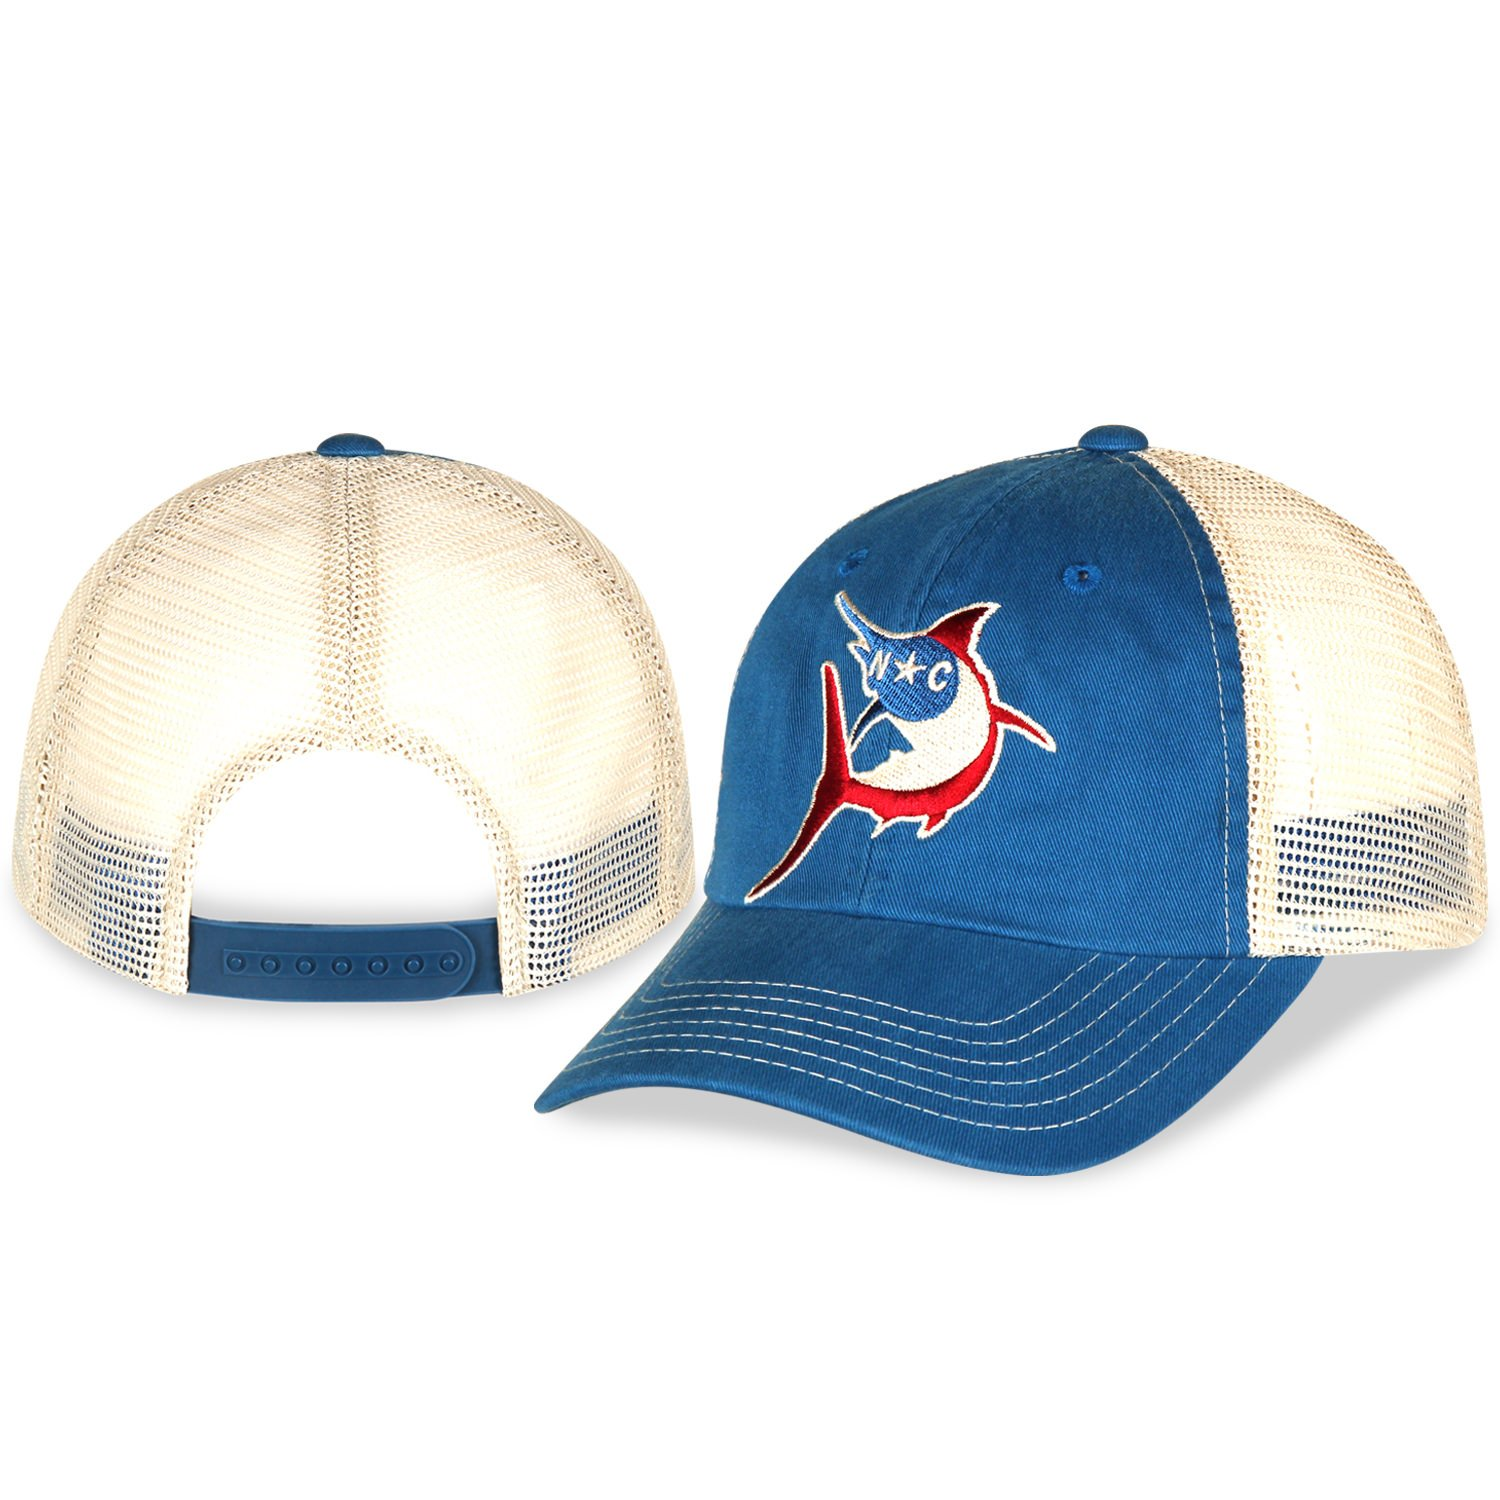 b6951a707ccd0 Amazon.com   Gills-N-Game North Carolina Marlin Hat